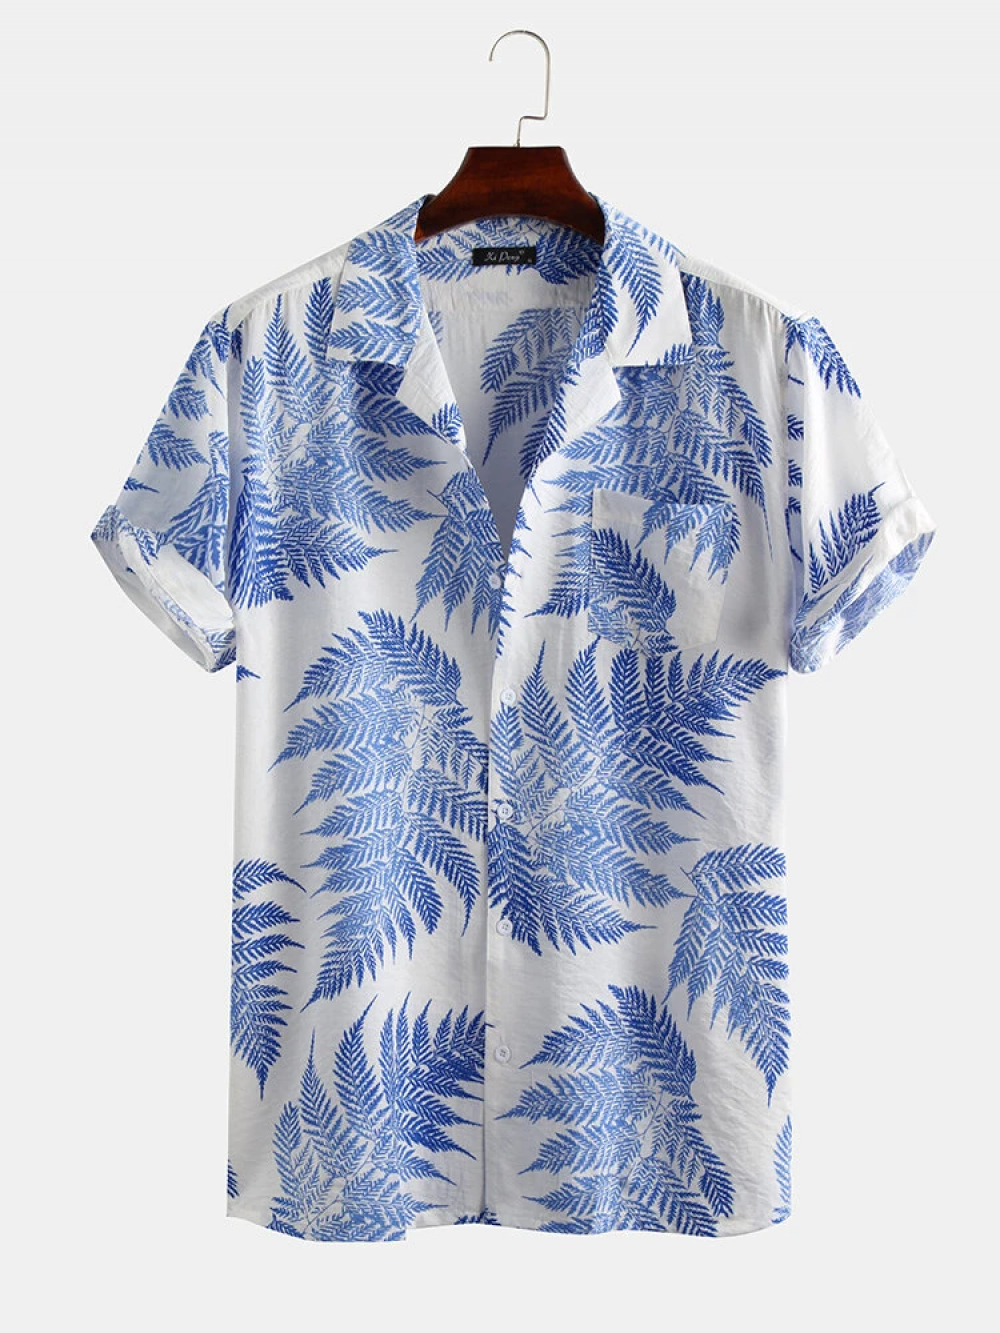 Outstanding White And Blue Pine Leaves Print Cotton Short Sleeve Relaxed Shirt